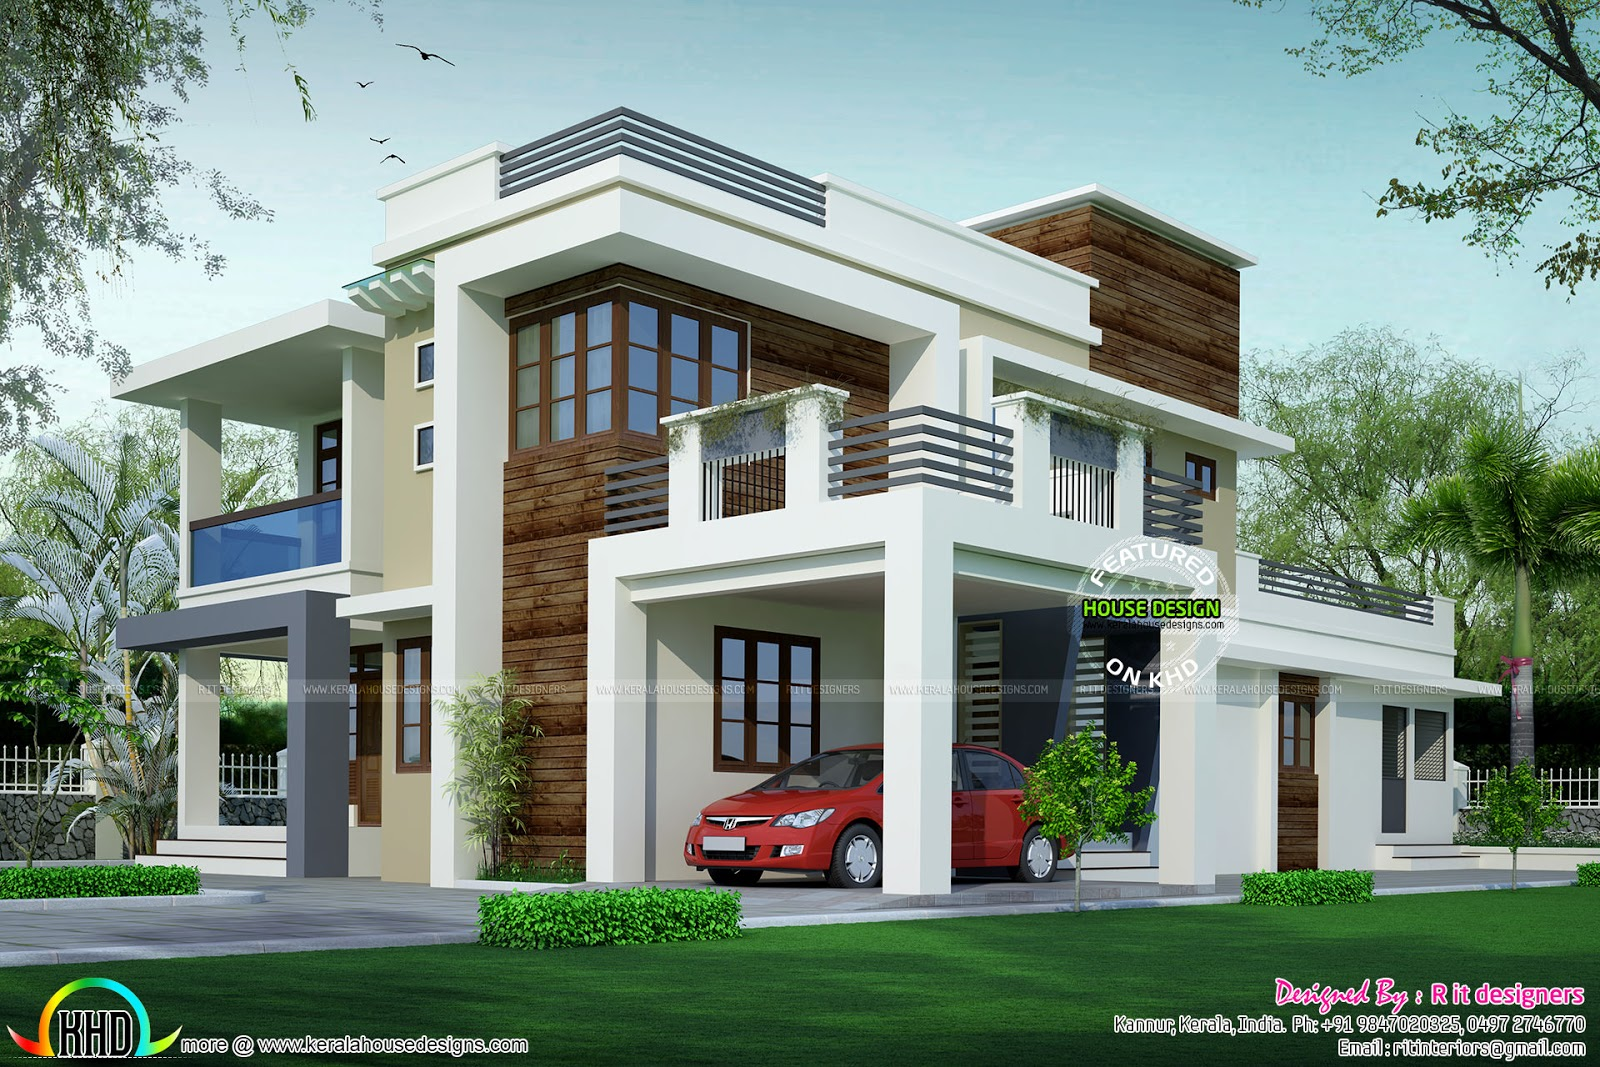 House design contemporary model kerala home design and for Modern model homes